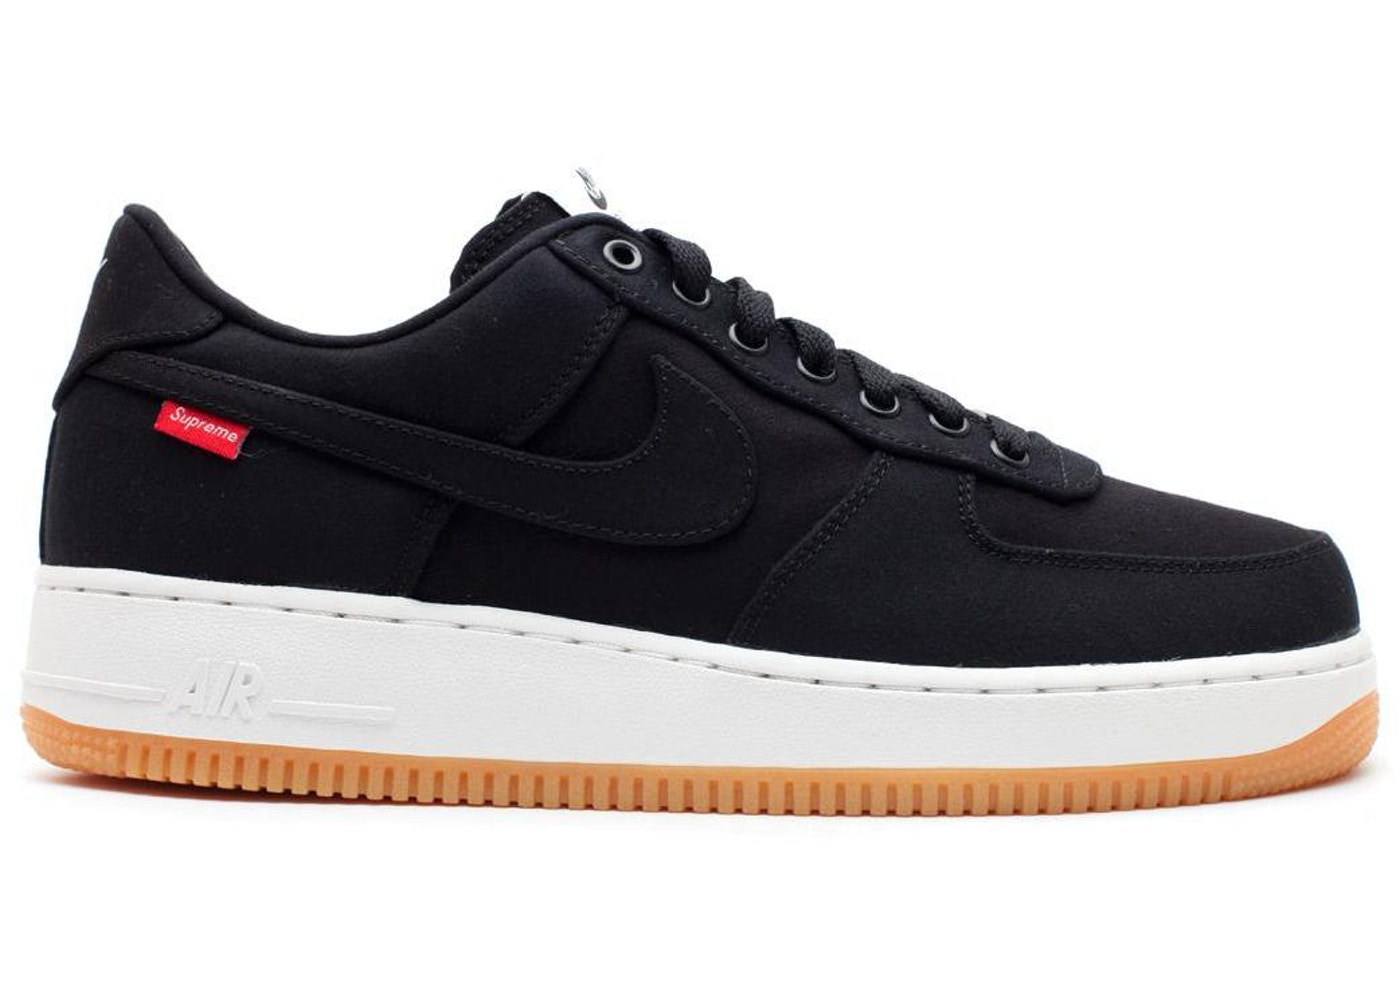 df4b83842fd94 Air Force 1 Low Supreme Black - 573488-090